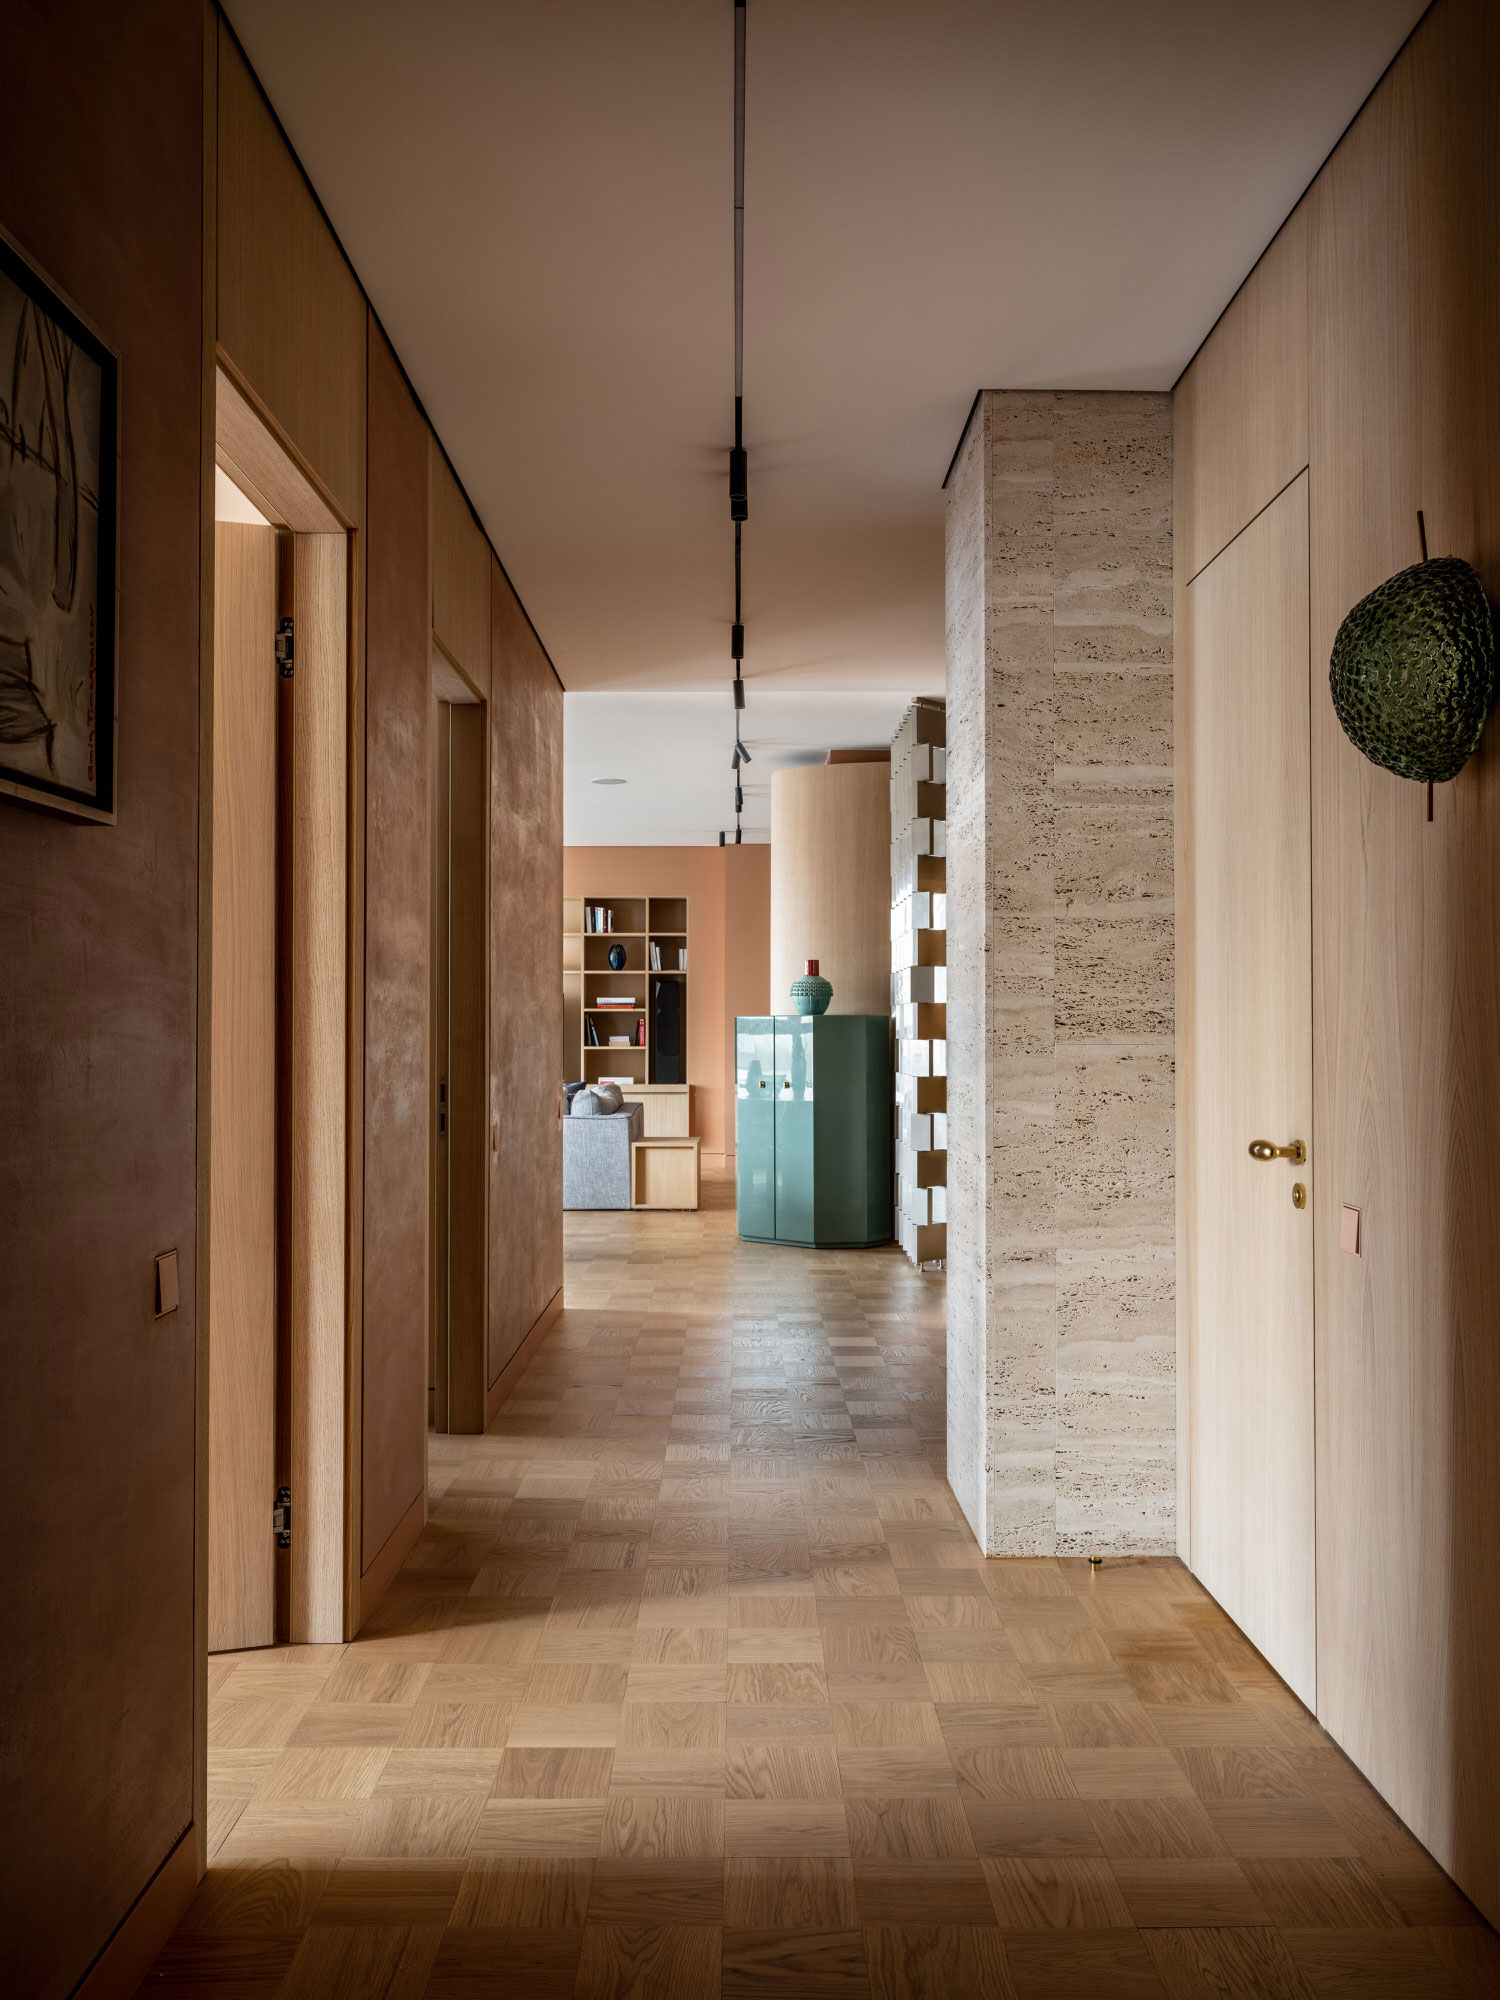 Agnes Rudzite, Moscow Appartment Interiors, Photo Mikhail Loskutoff | Yellowtrace